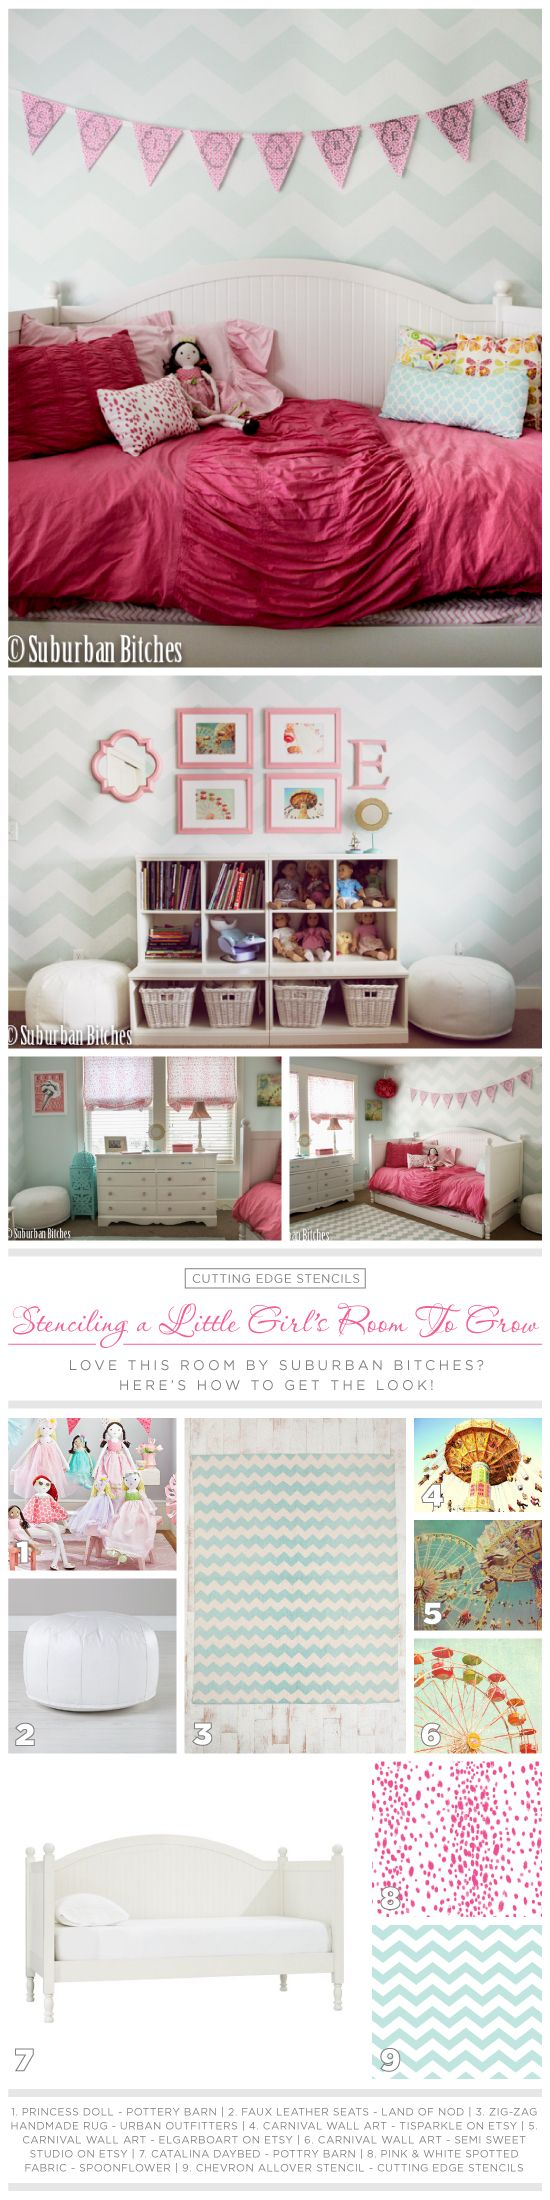 Steal the look of this Chevron Allover stenciled little girl's room. http://www.cuttingedgestencils.com/chevron-stencil-pattern.html